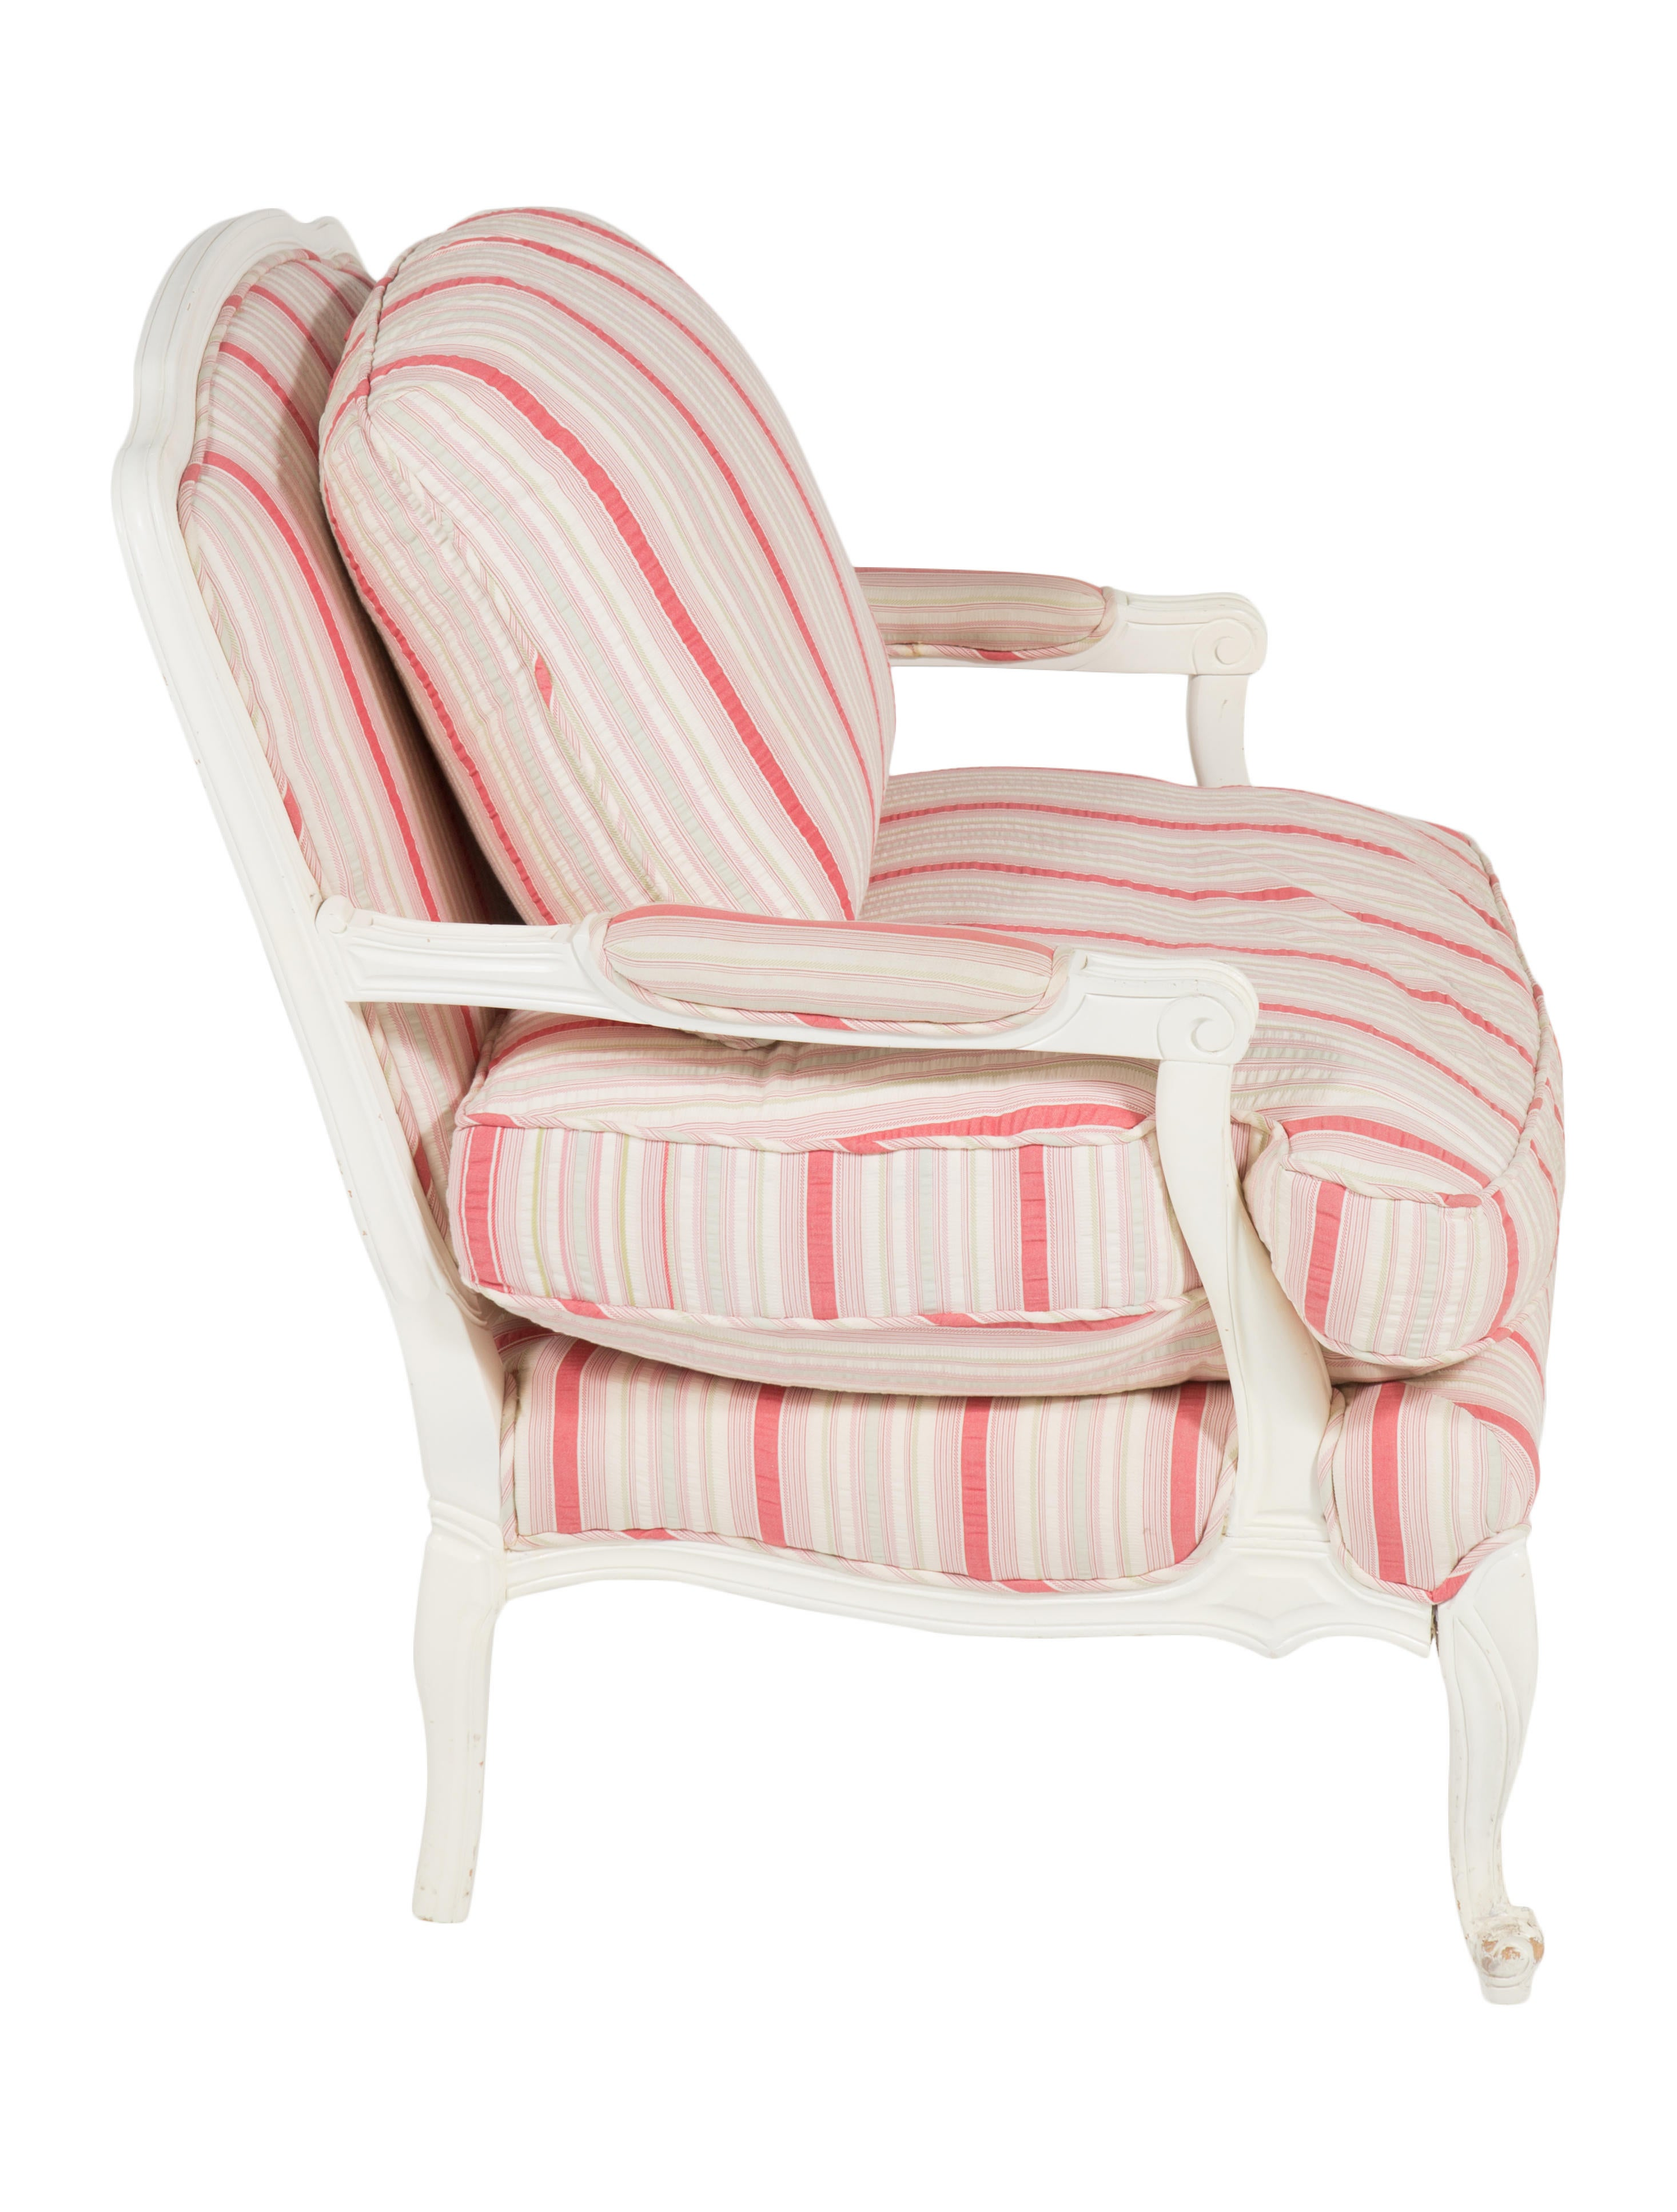 shabby chic upholstered chair - furniture